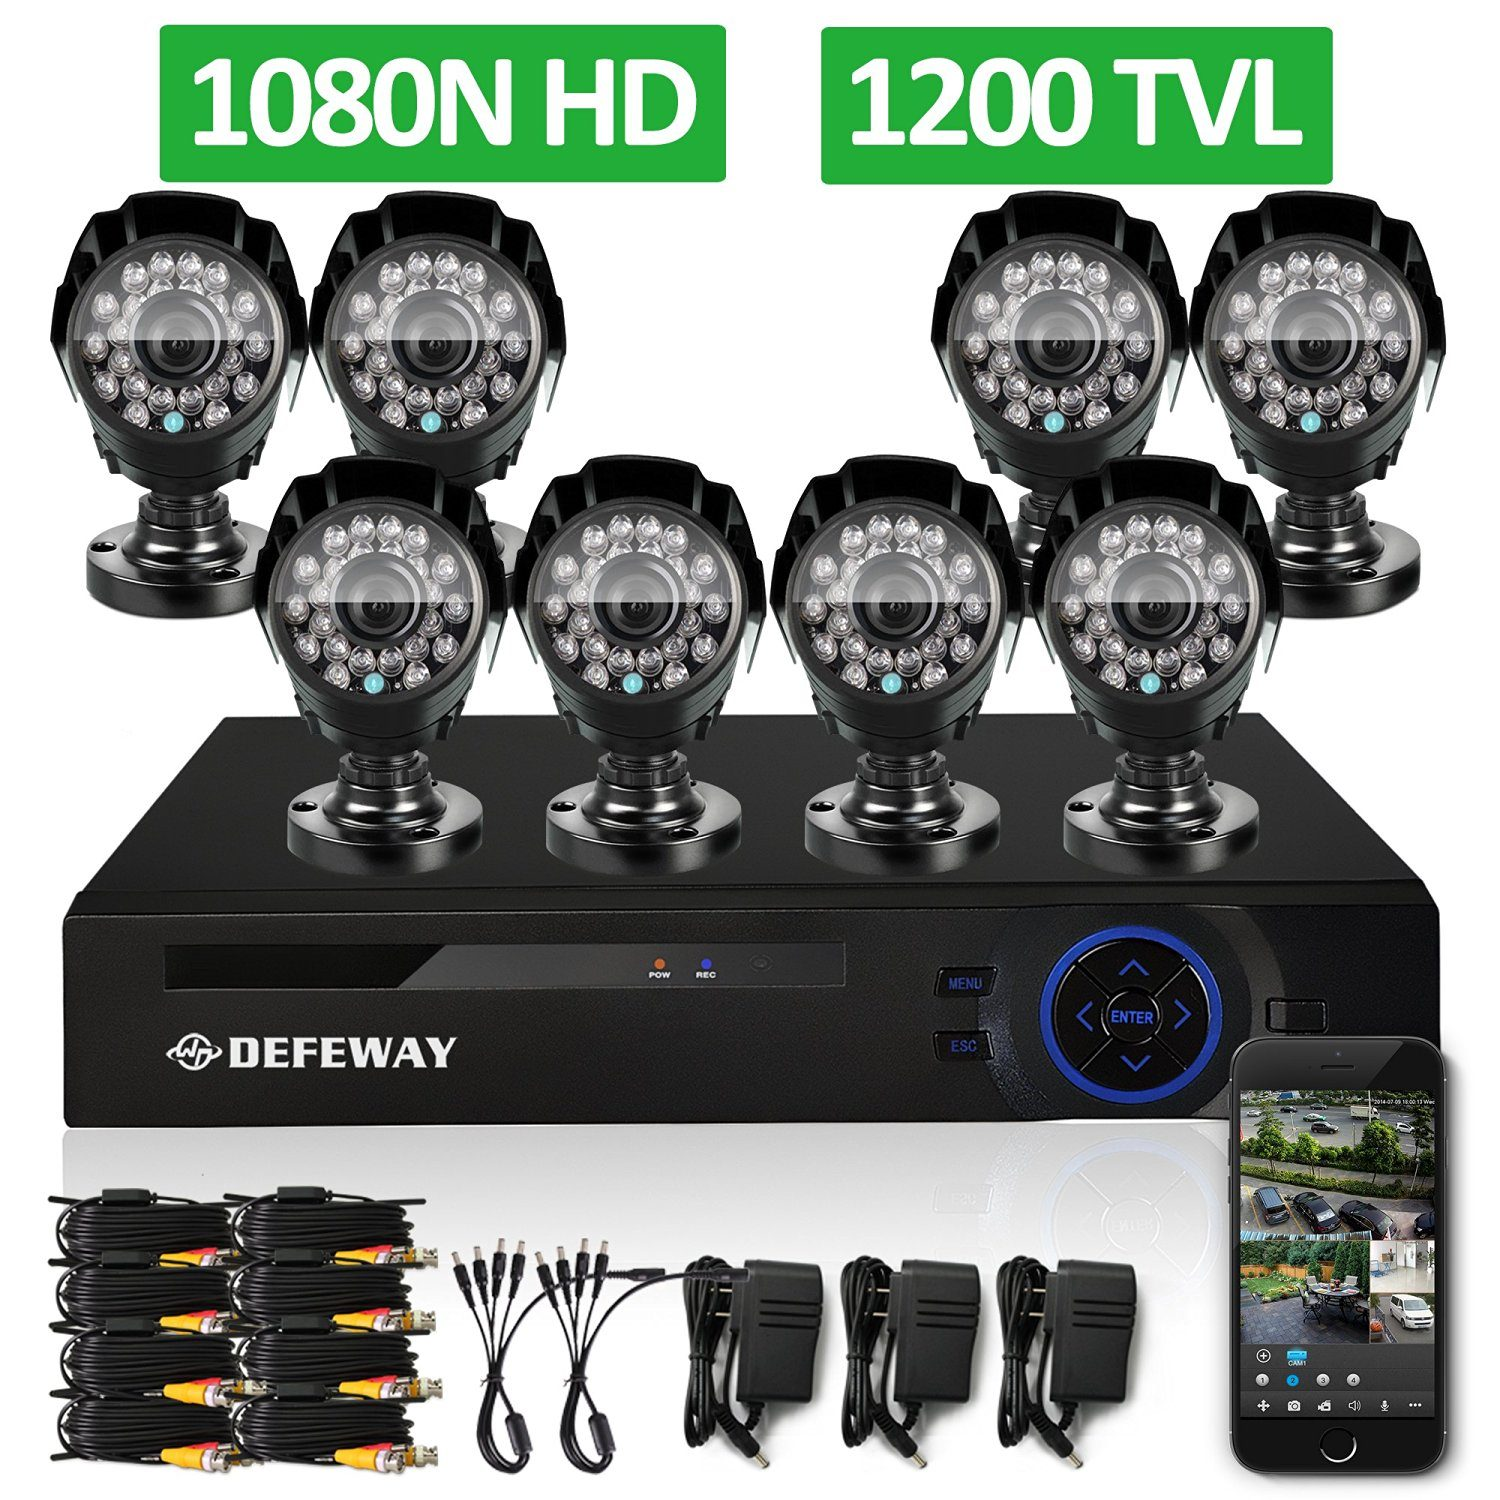 DEFEWAY 8CH 1080N Security DVR 8 1200TVL 720P HD Outdoor Video Surveillance Camera System